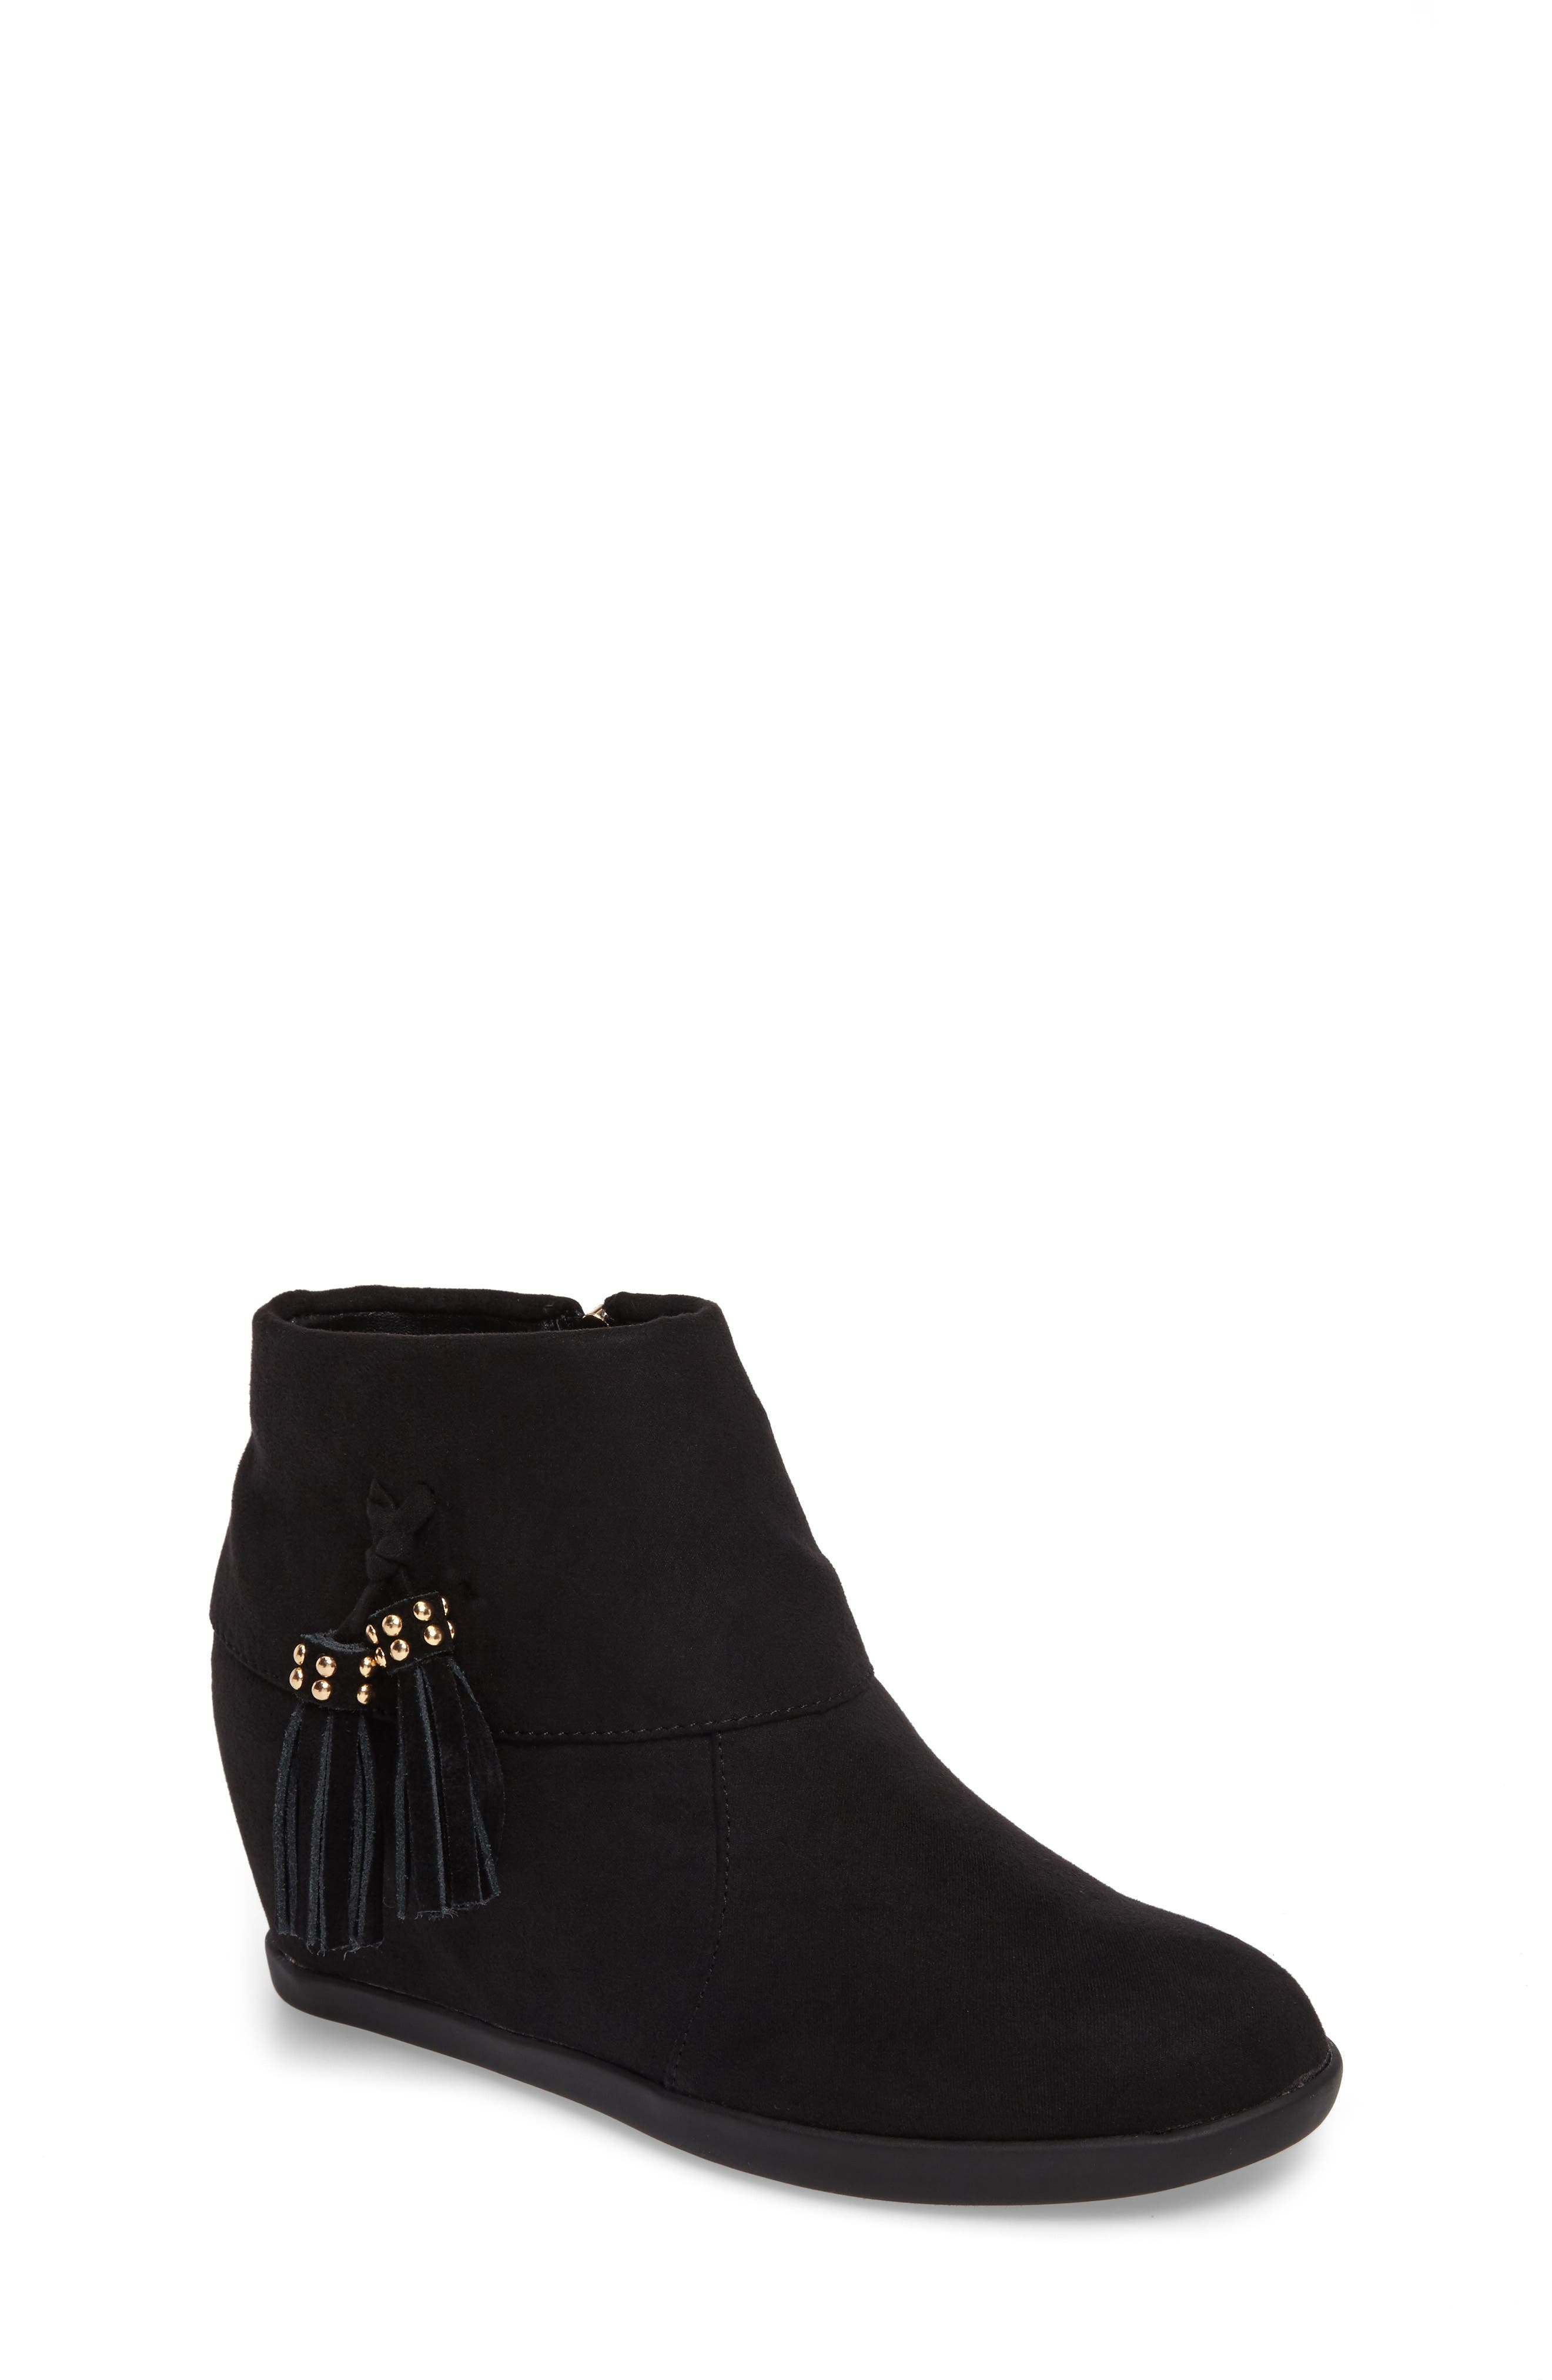 Valentina Cuff Concealed Wedge Bootie,                             Main thumbnail 1, color,                             001